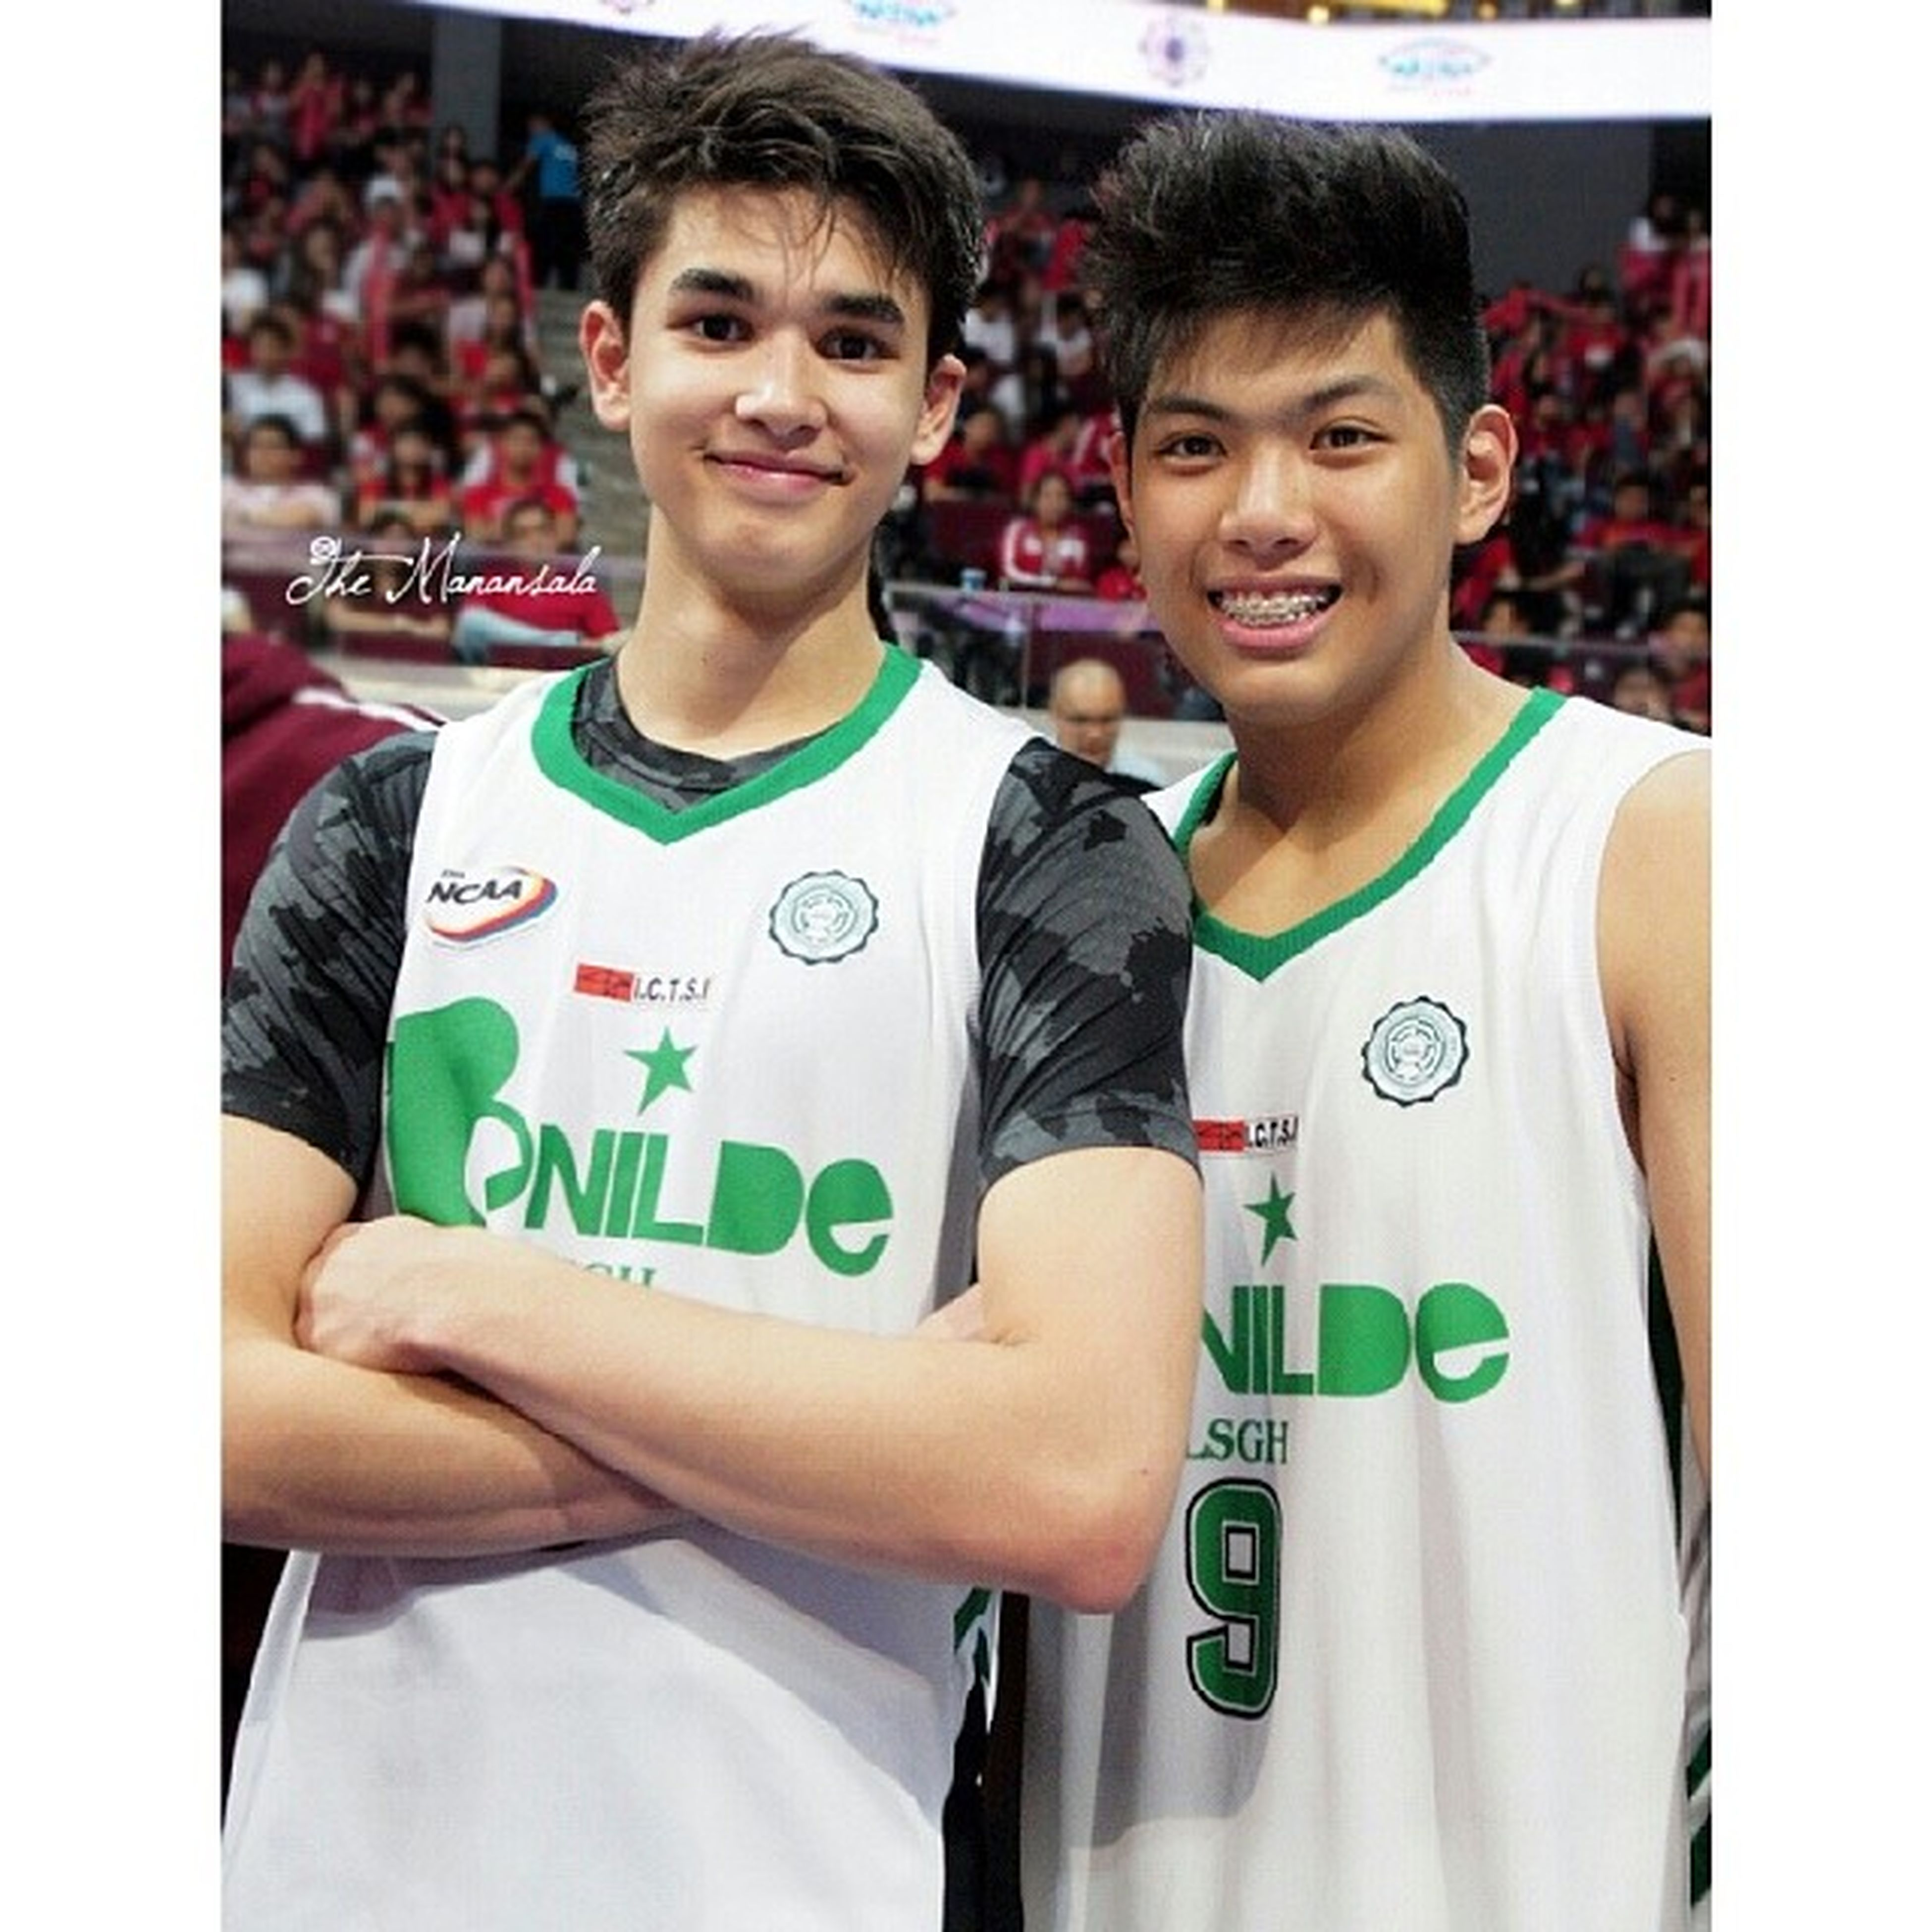 CSB-LSGH's Kobe Paras is named in Mythical Five (50.35 Total SP) while Rashleigh Rivero is Most Valuable Player (67.17 Total SP) and Defensive Player (10.83 def. rebs; Per game: 1.00 blks, 1.17 stls) this Ncaa89 Juniors Division Basketball Basketball Juniors Mythical5 mvp defensiveplayer kobeparas rashleighrivero csb lsgh